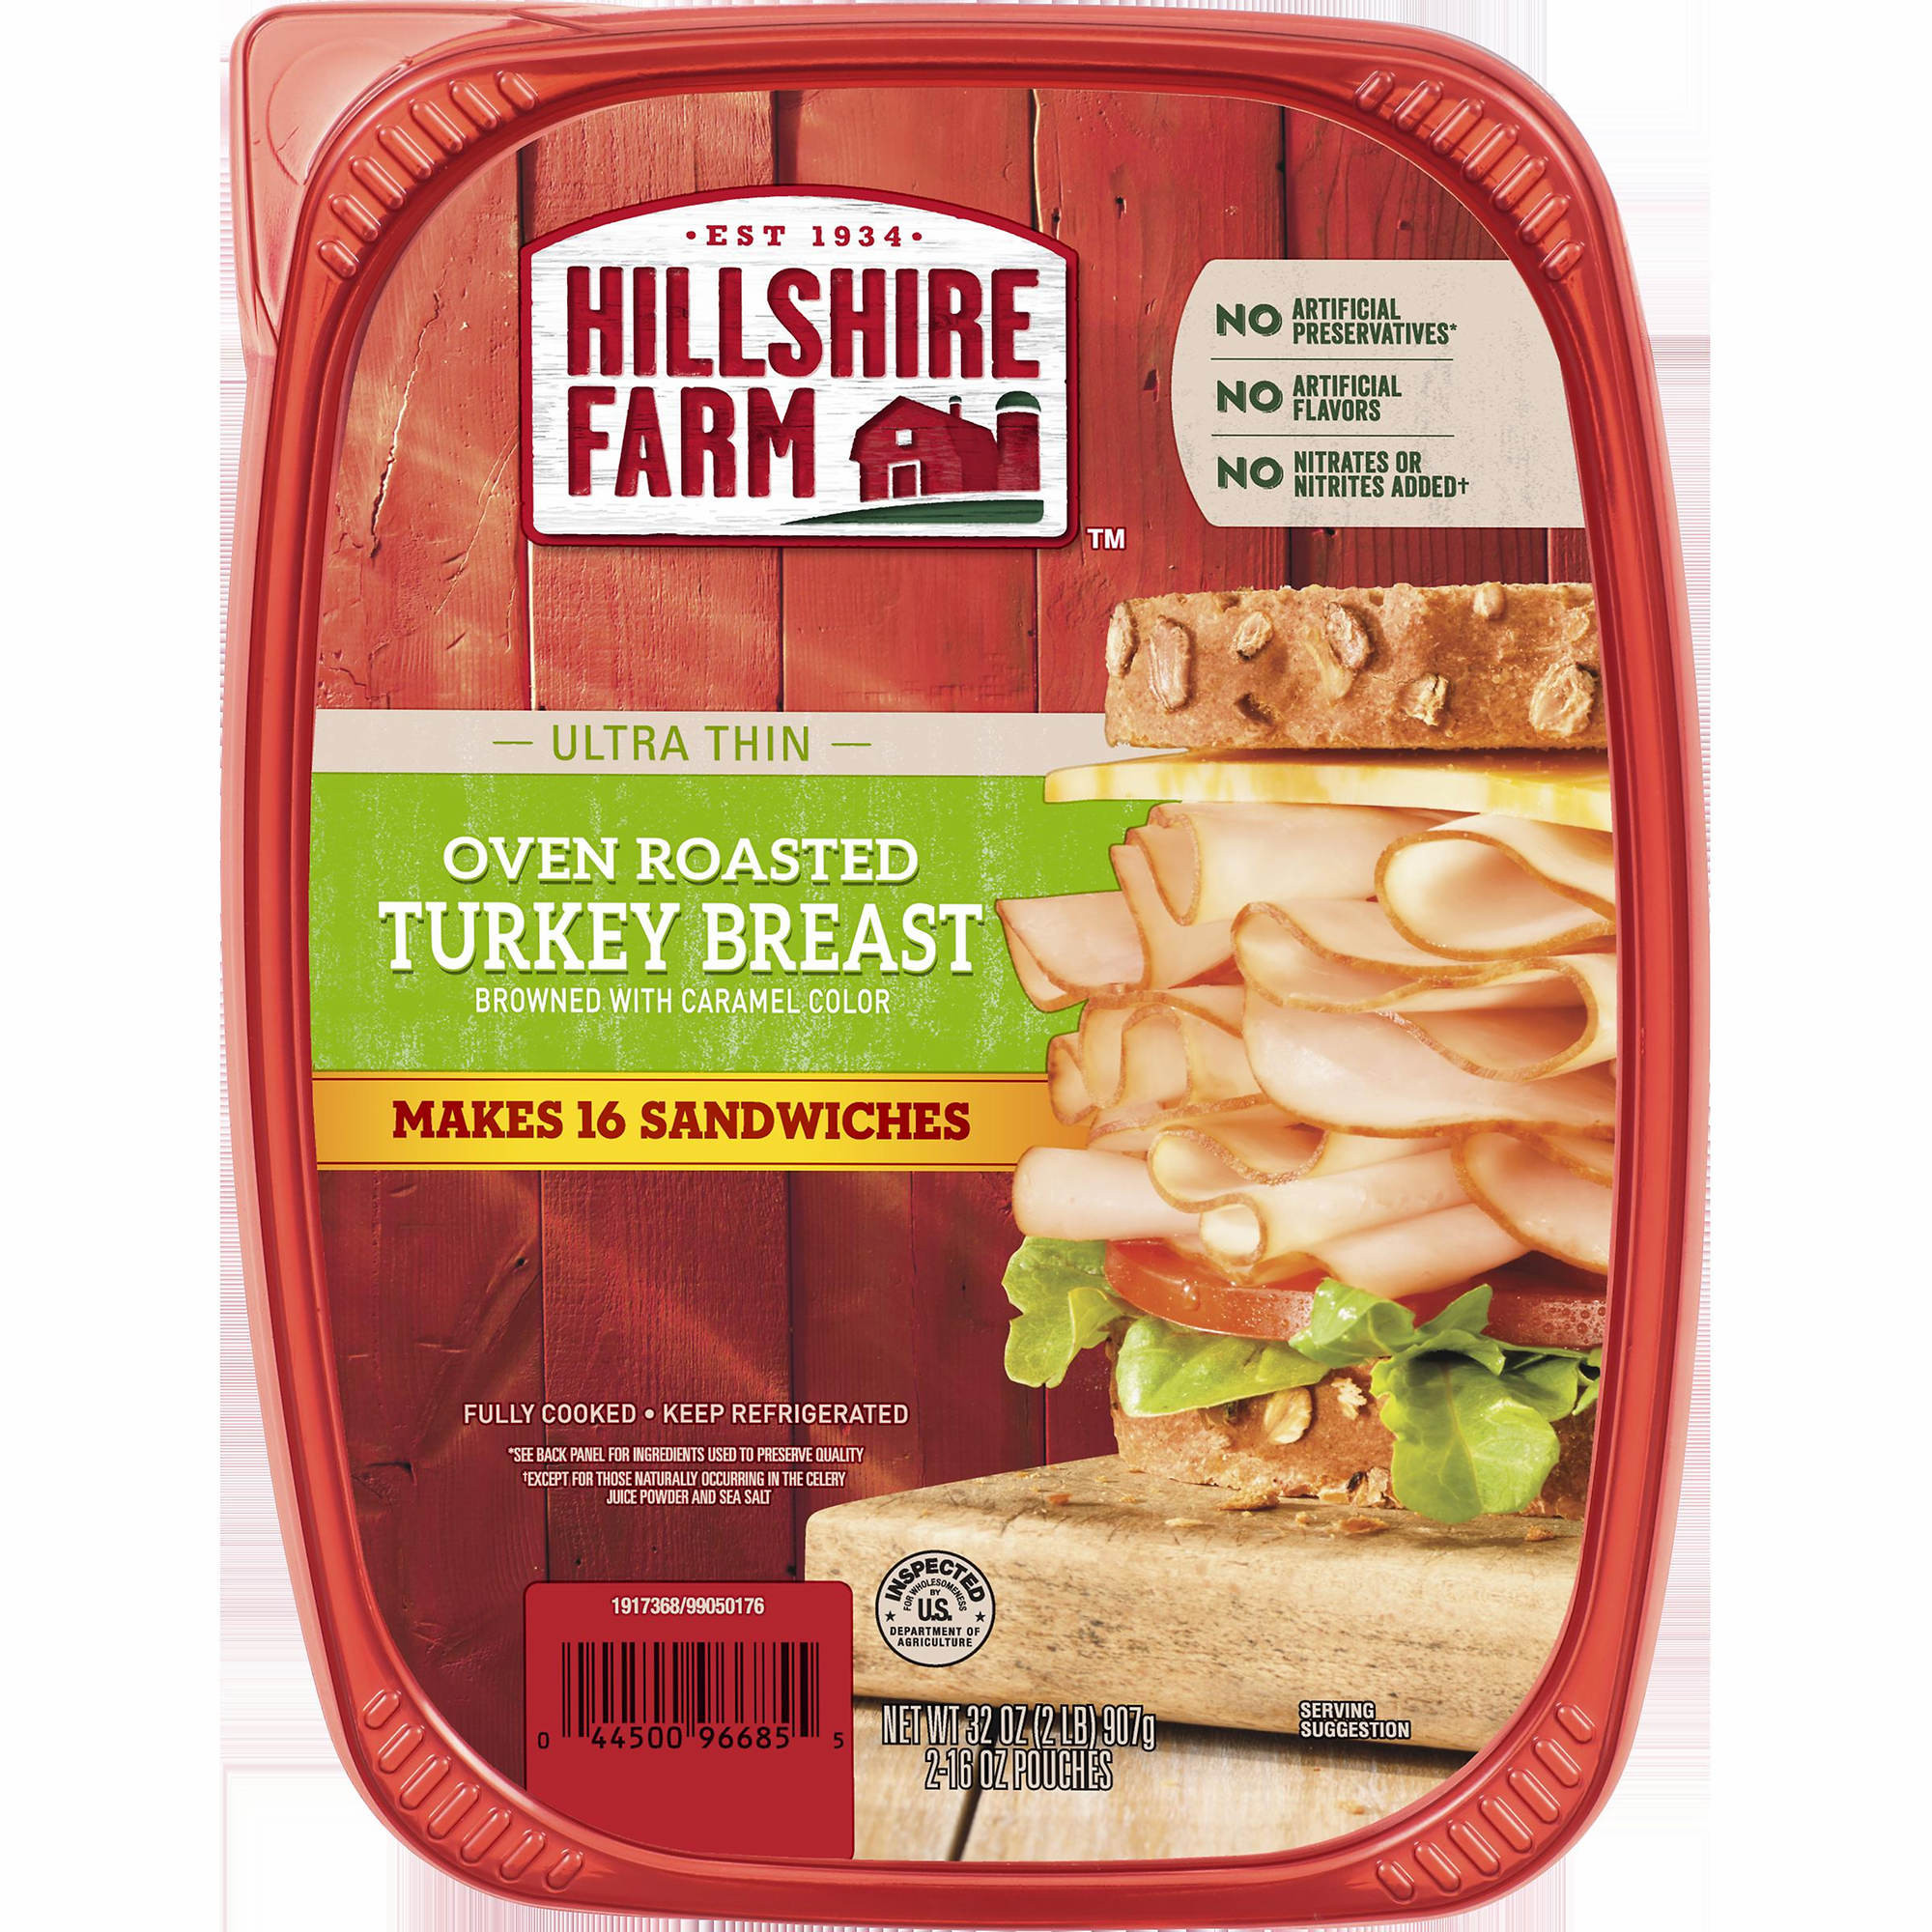 Hillshire Farms Turkey Sausage  Hillshire Farm Oven Roasted Turkey Ultra Thin Lunch Meat